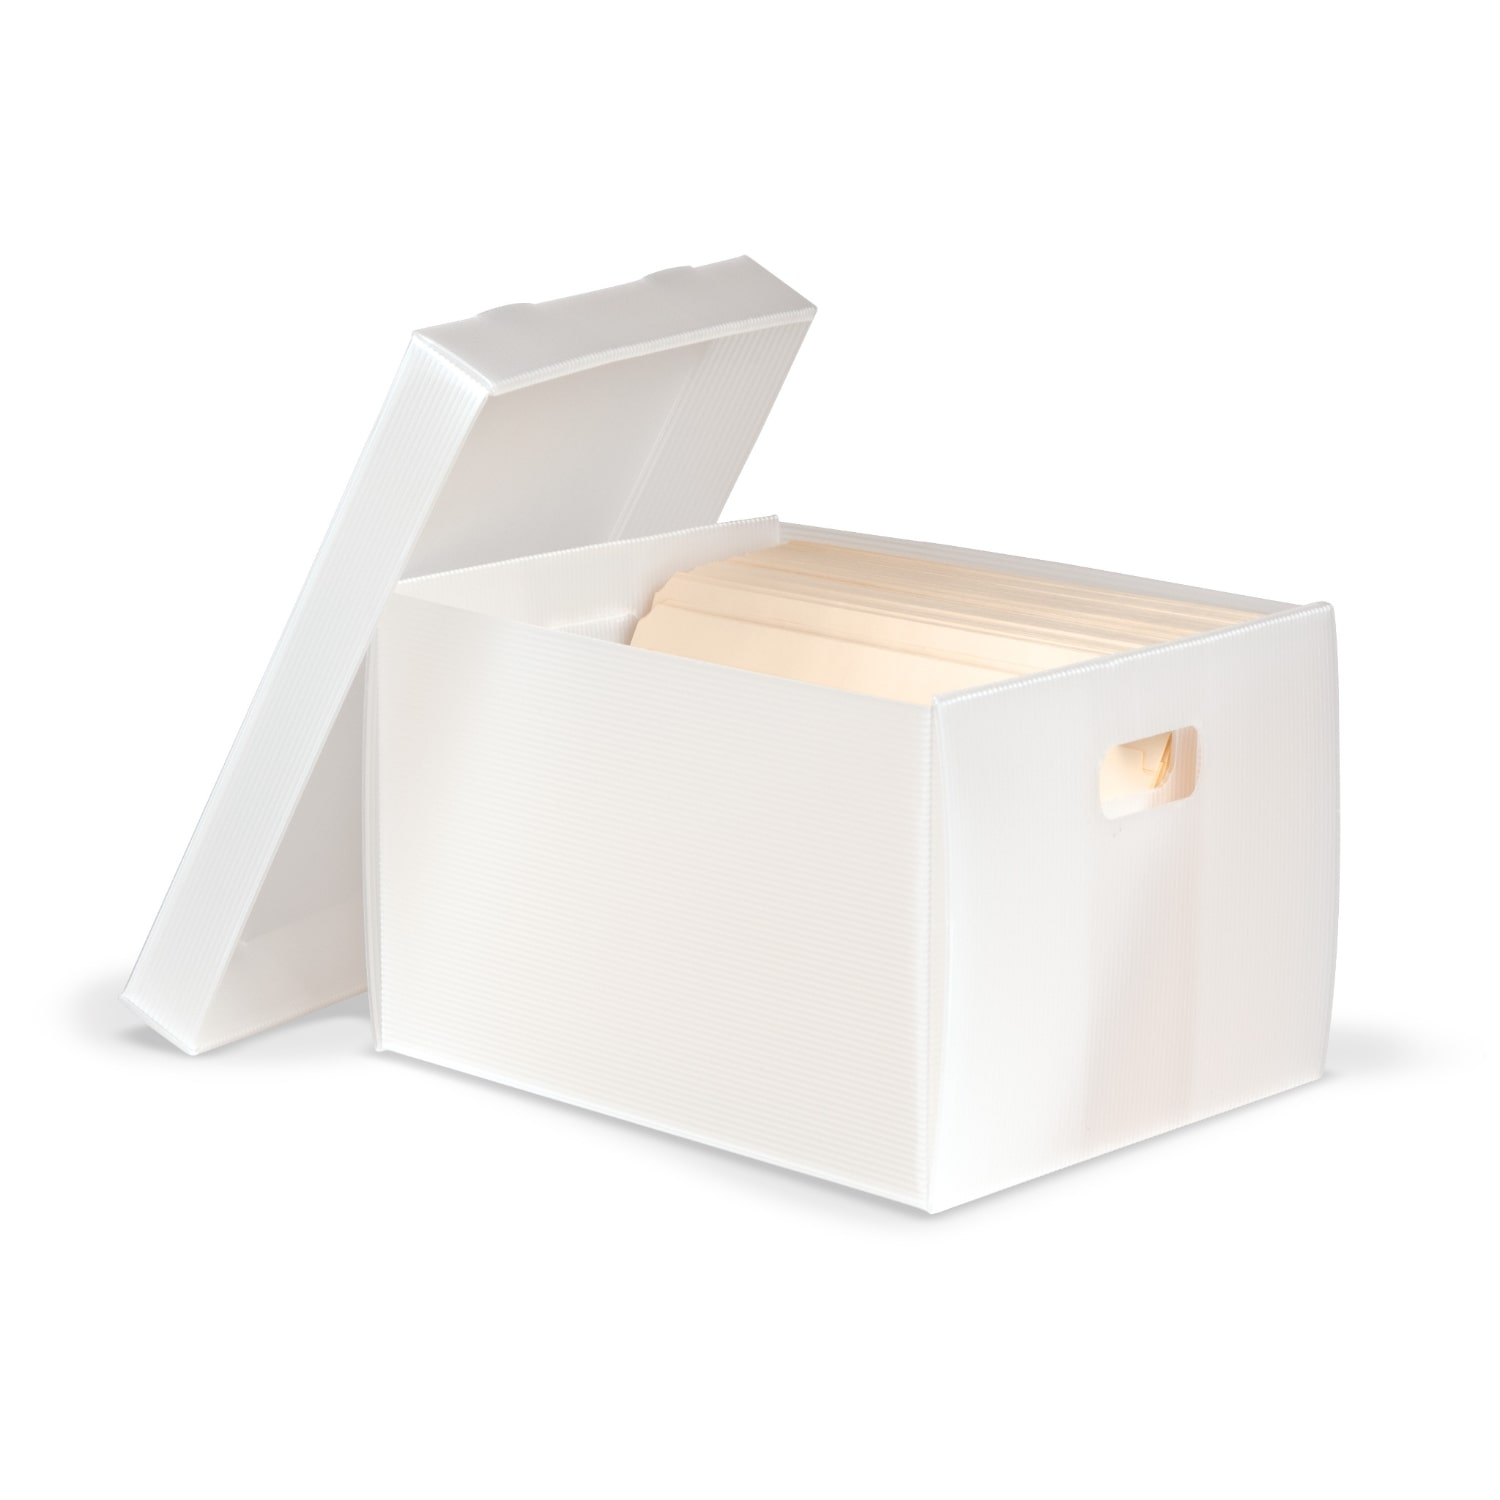 Corrugated Polypropylene Record Storage Carton Archival & Library Solutions